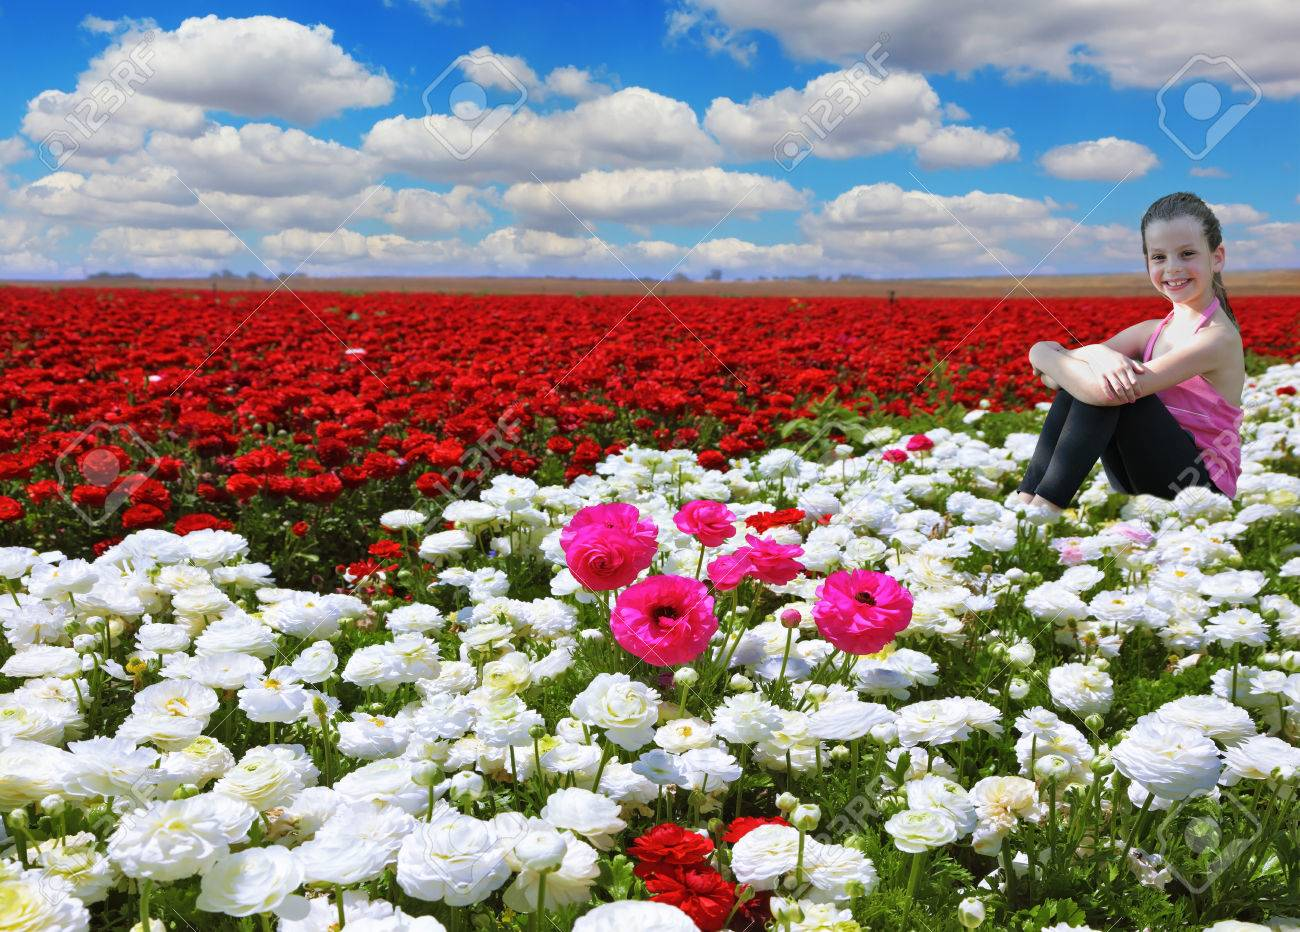 Very beautiful bright colorful flower fields commercial cultivation photo very beautiful bright colorful flower fields commercial cultivation of flowers for sale abroad among the flowers charming smiling little girl izmirmasajfo Image collections